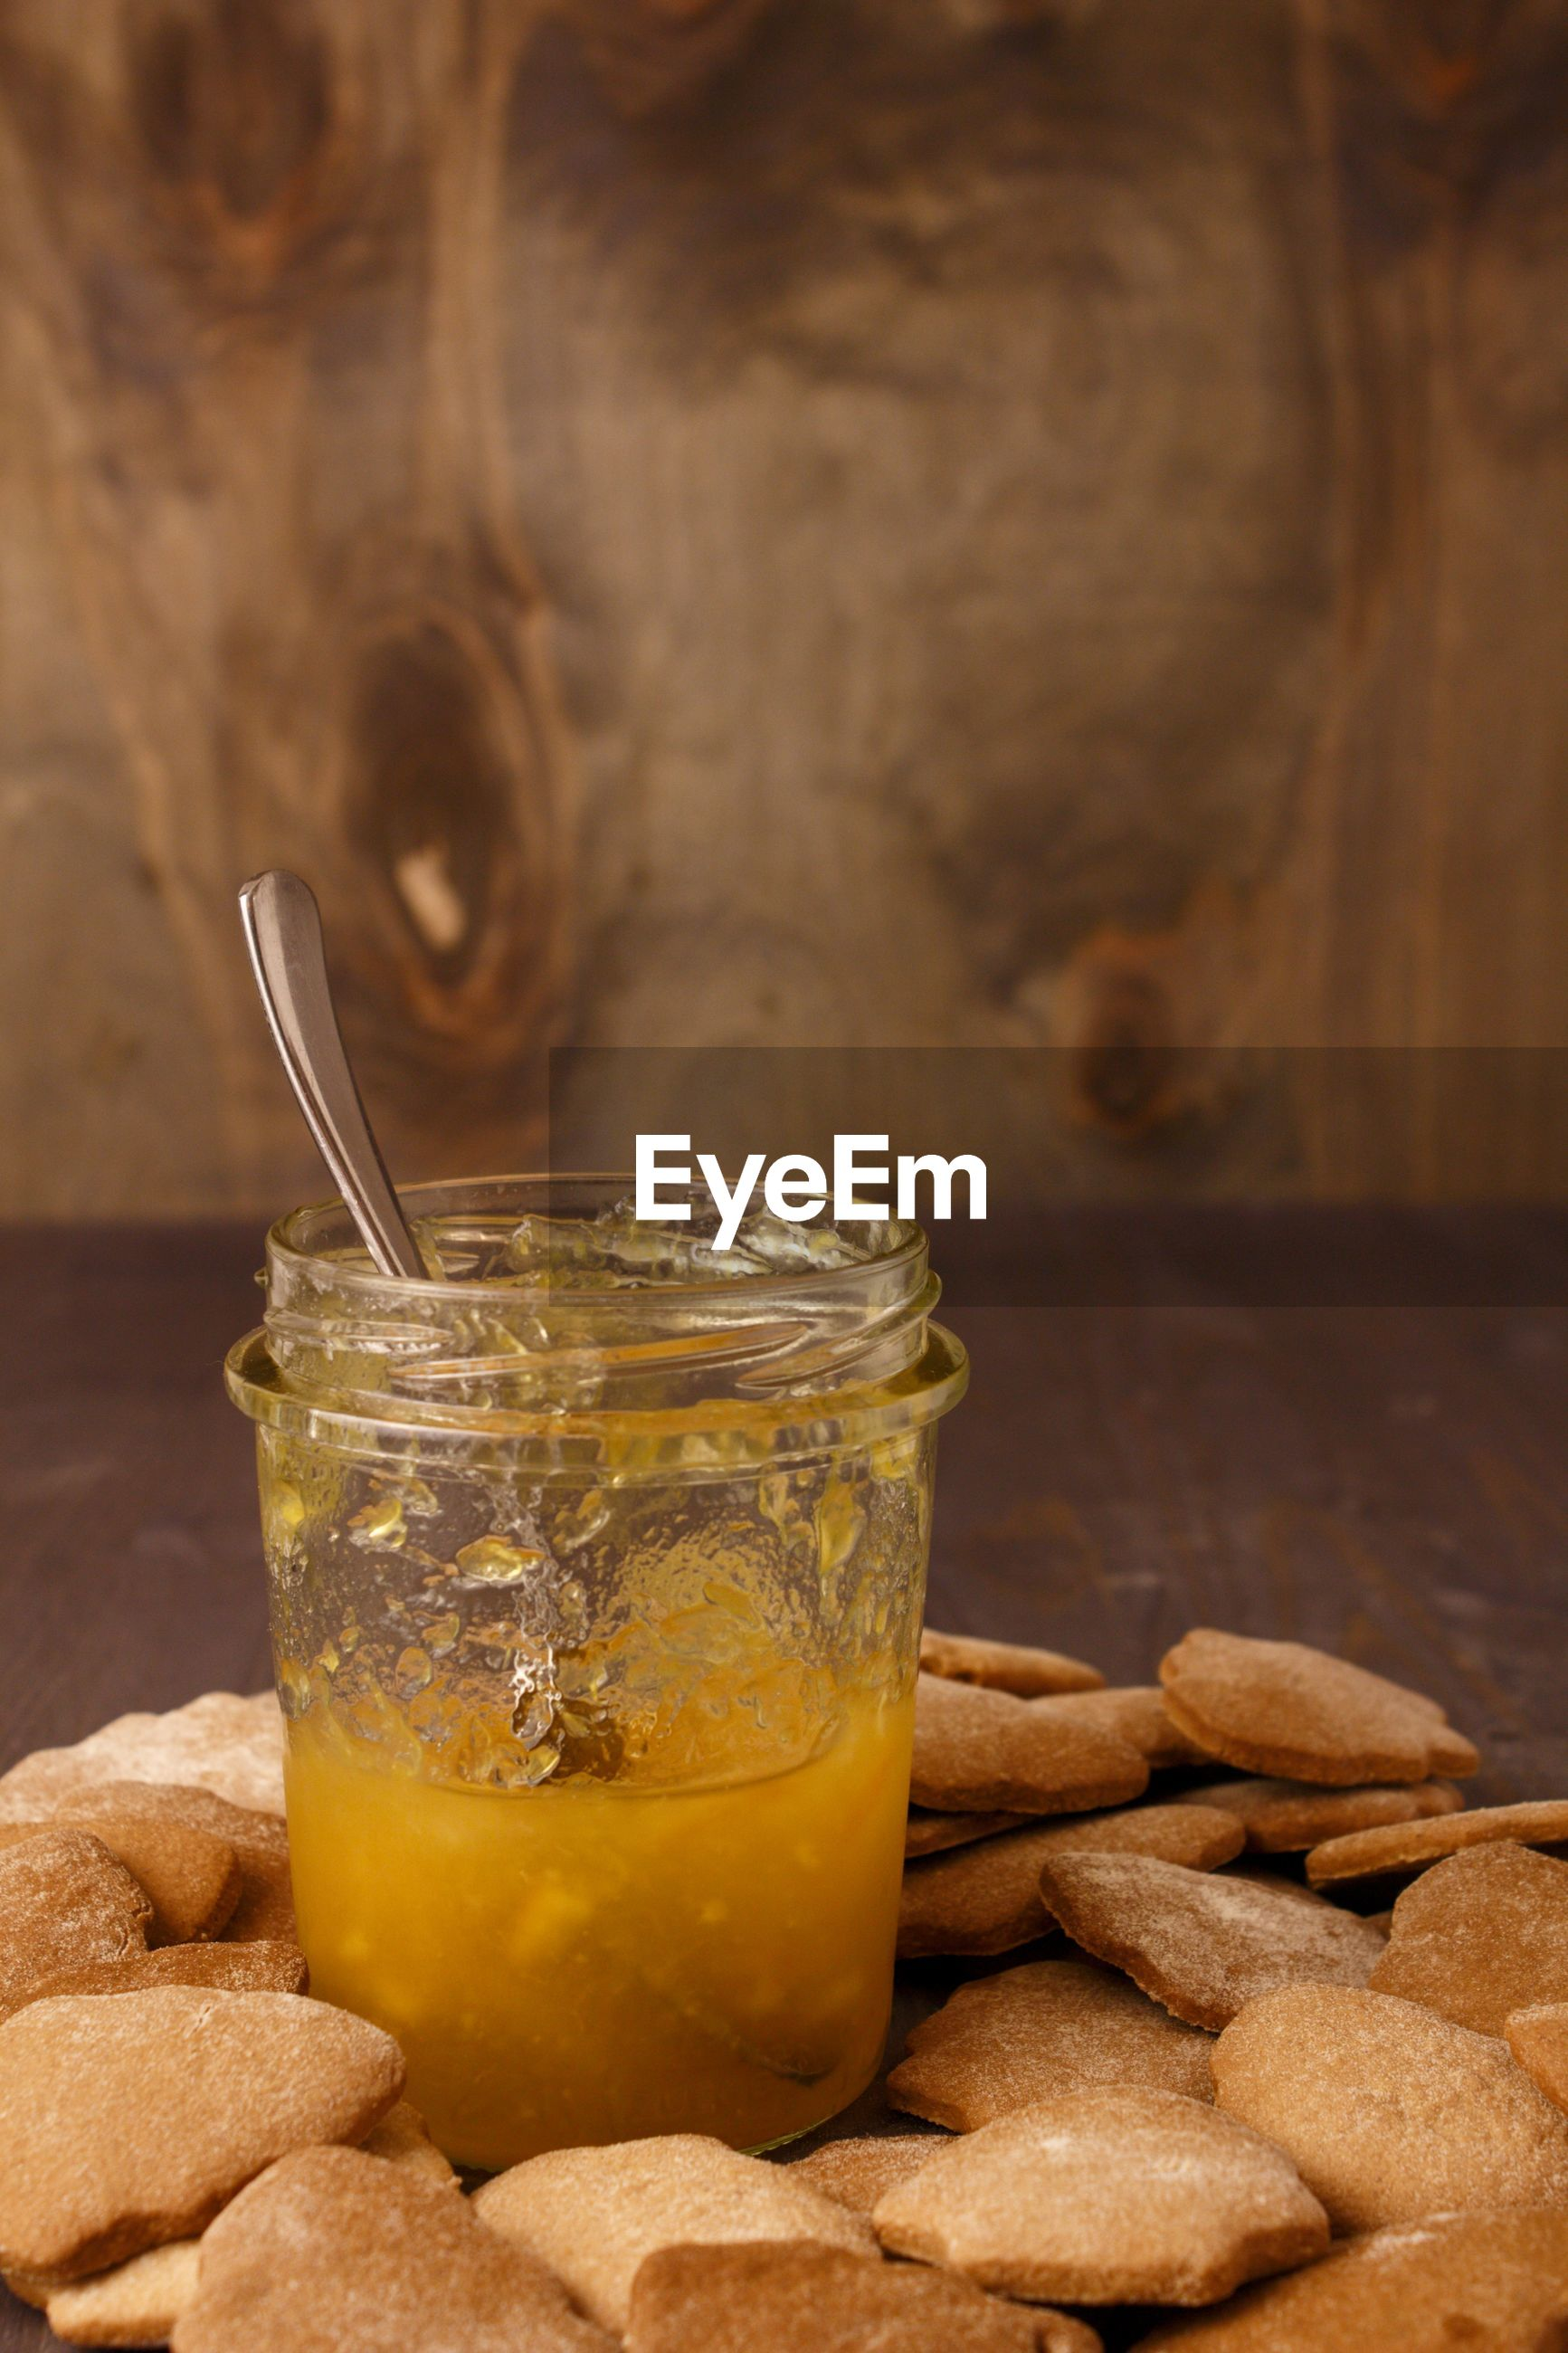 Orange jam in a glass jar with a spoon. on the table with ginger homemade cookies